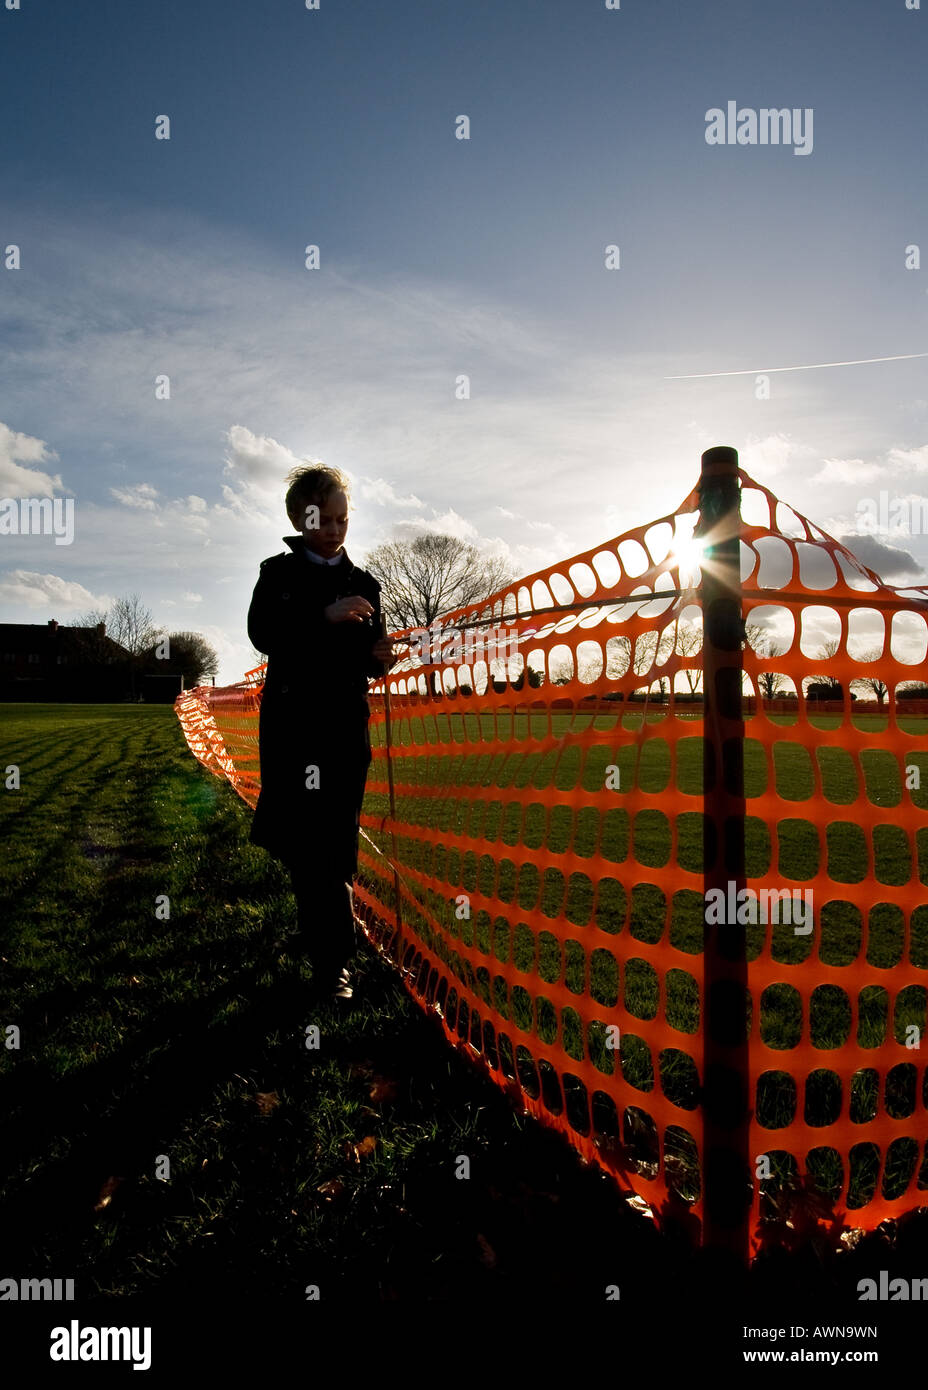 young boy on recreation ground with sun and silhouette - Stock Image